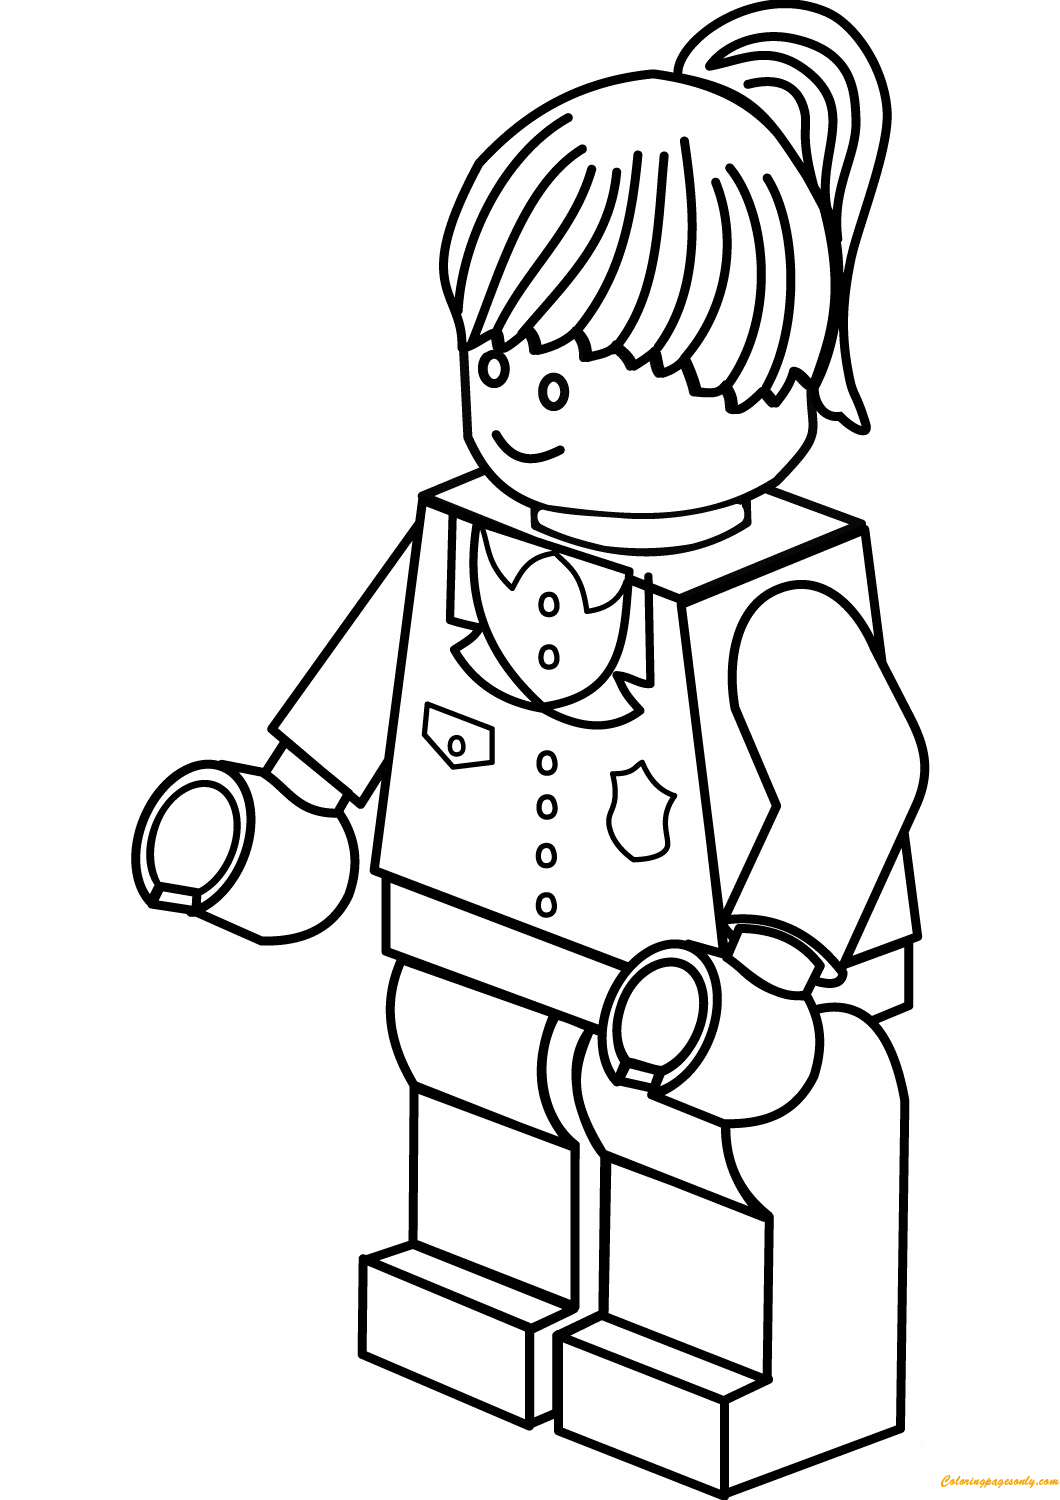 Lego City Police Woman Coloring Page